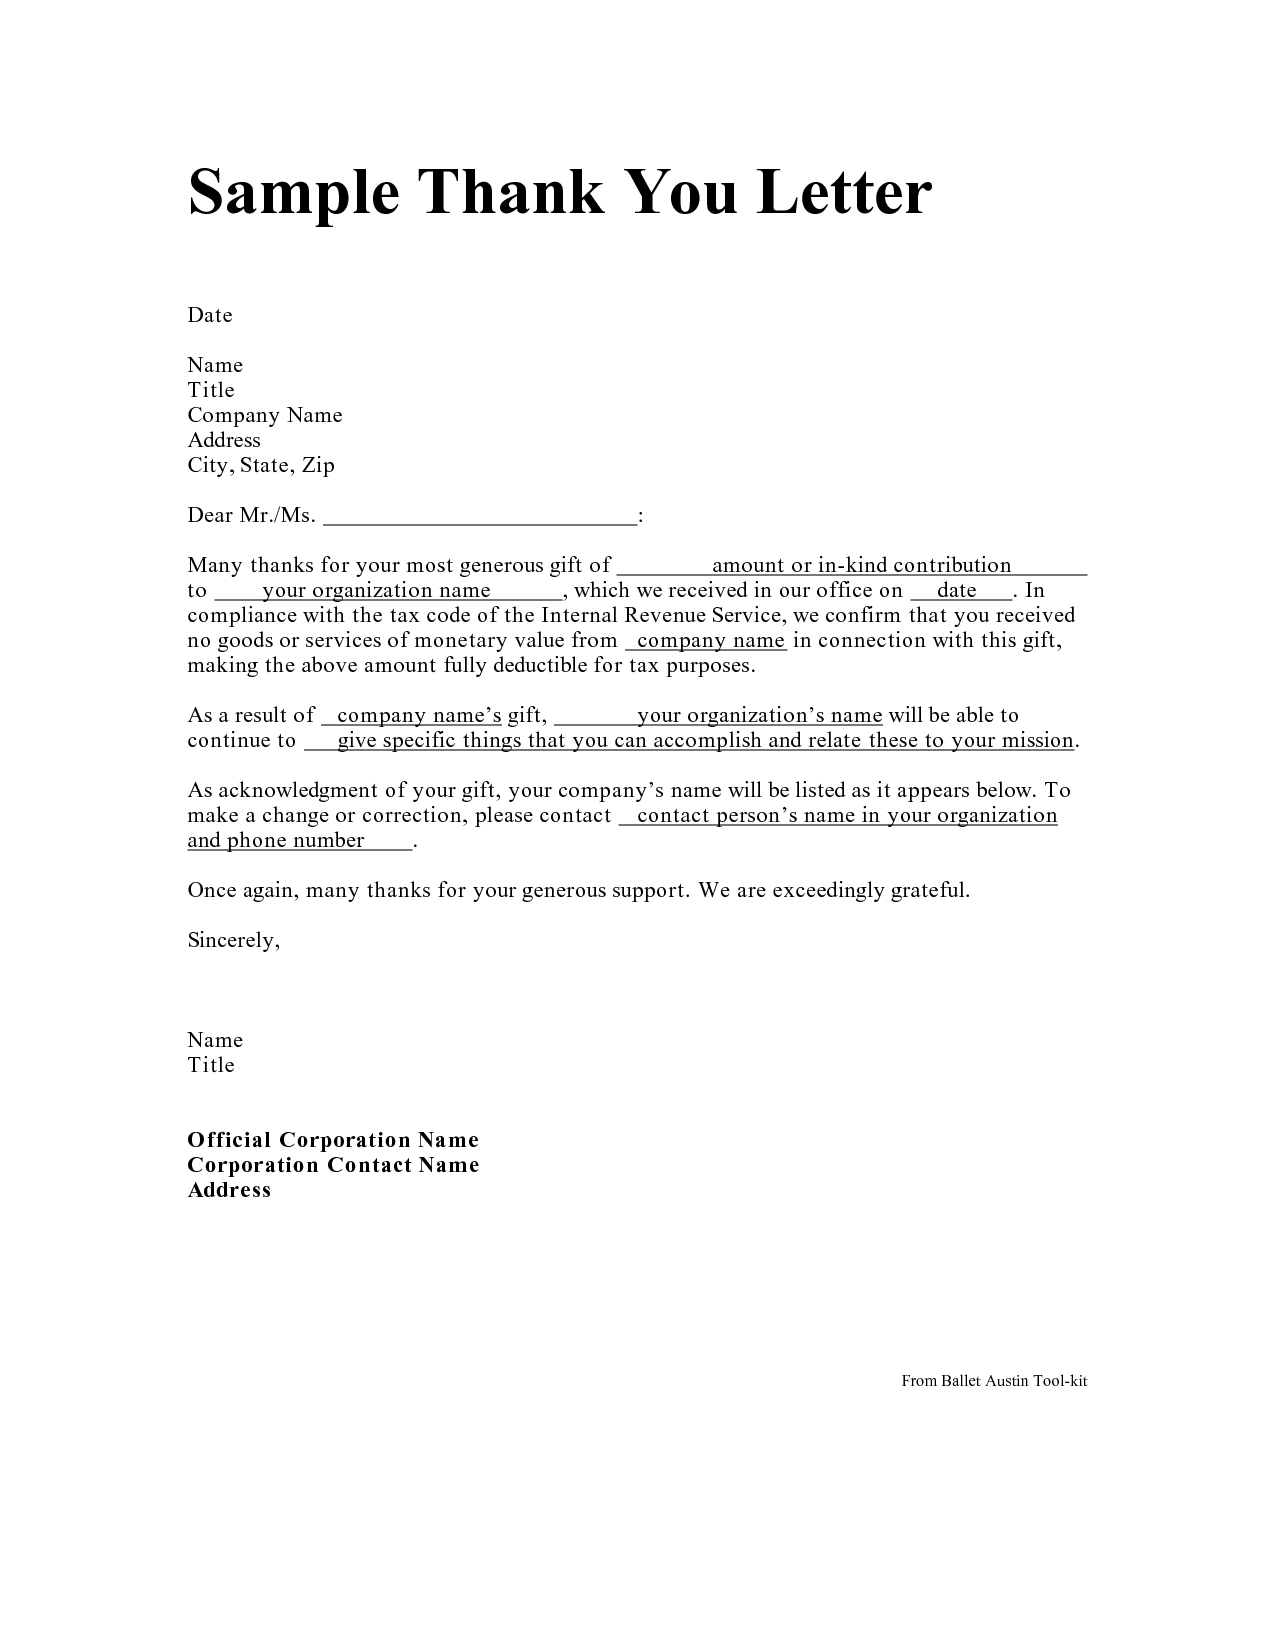 Formal Letter Template - Example Of Thank You Letter Acurnamedia